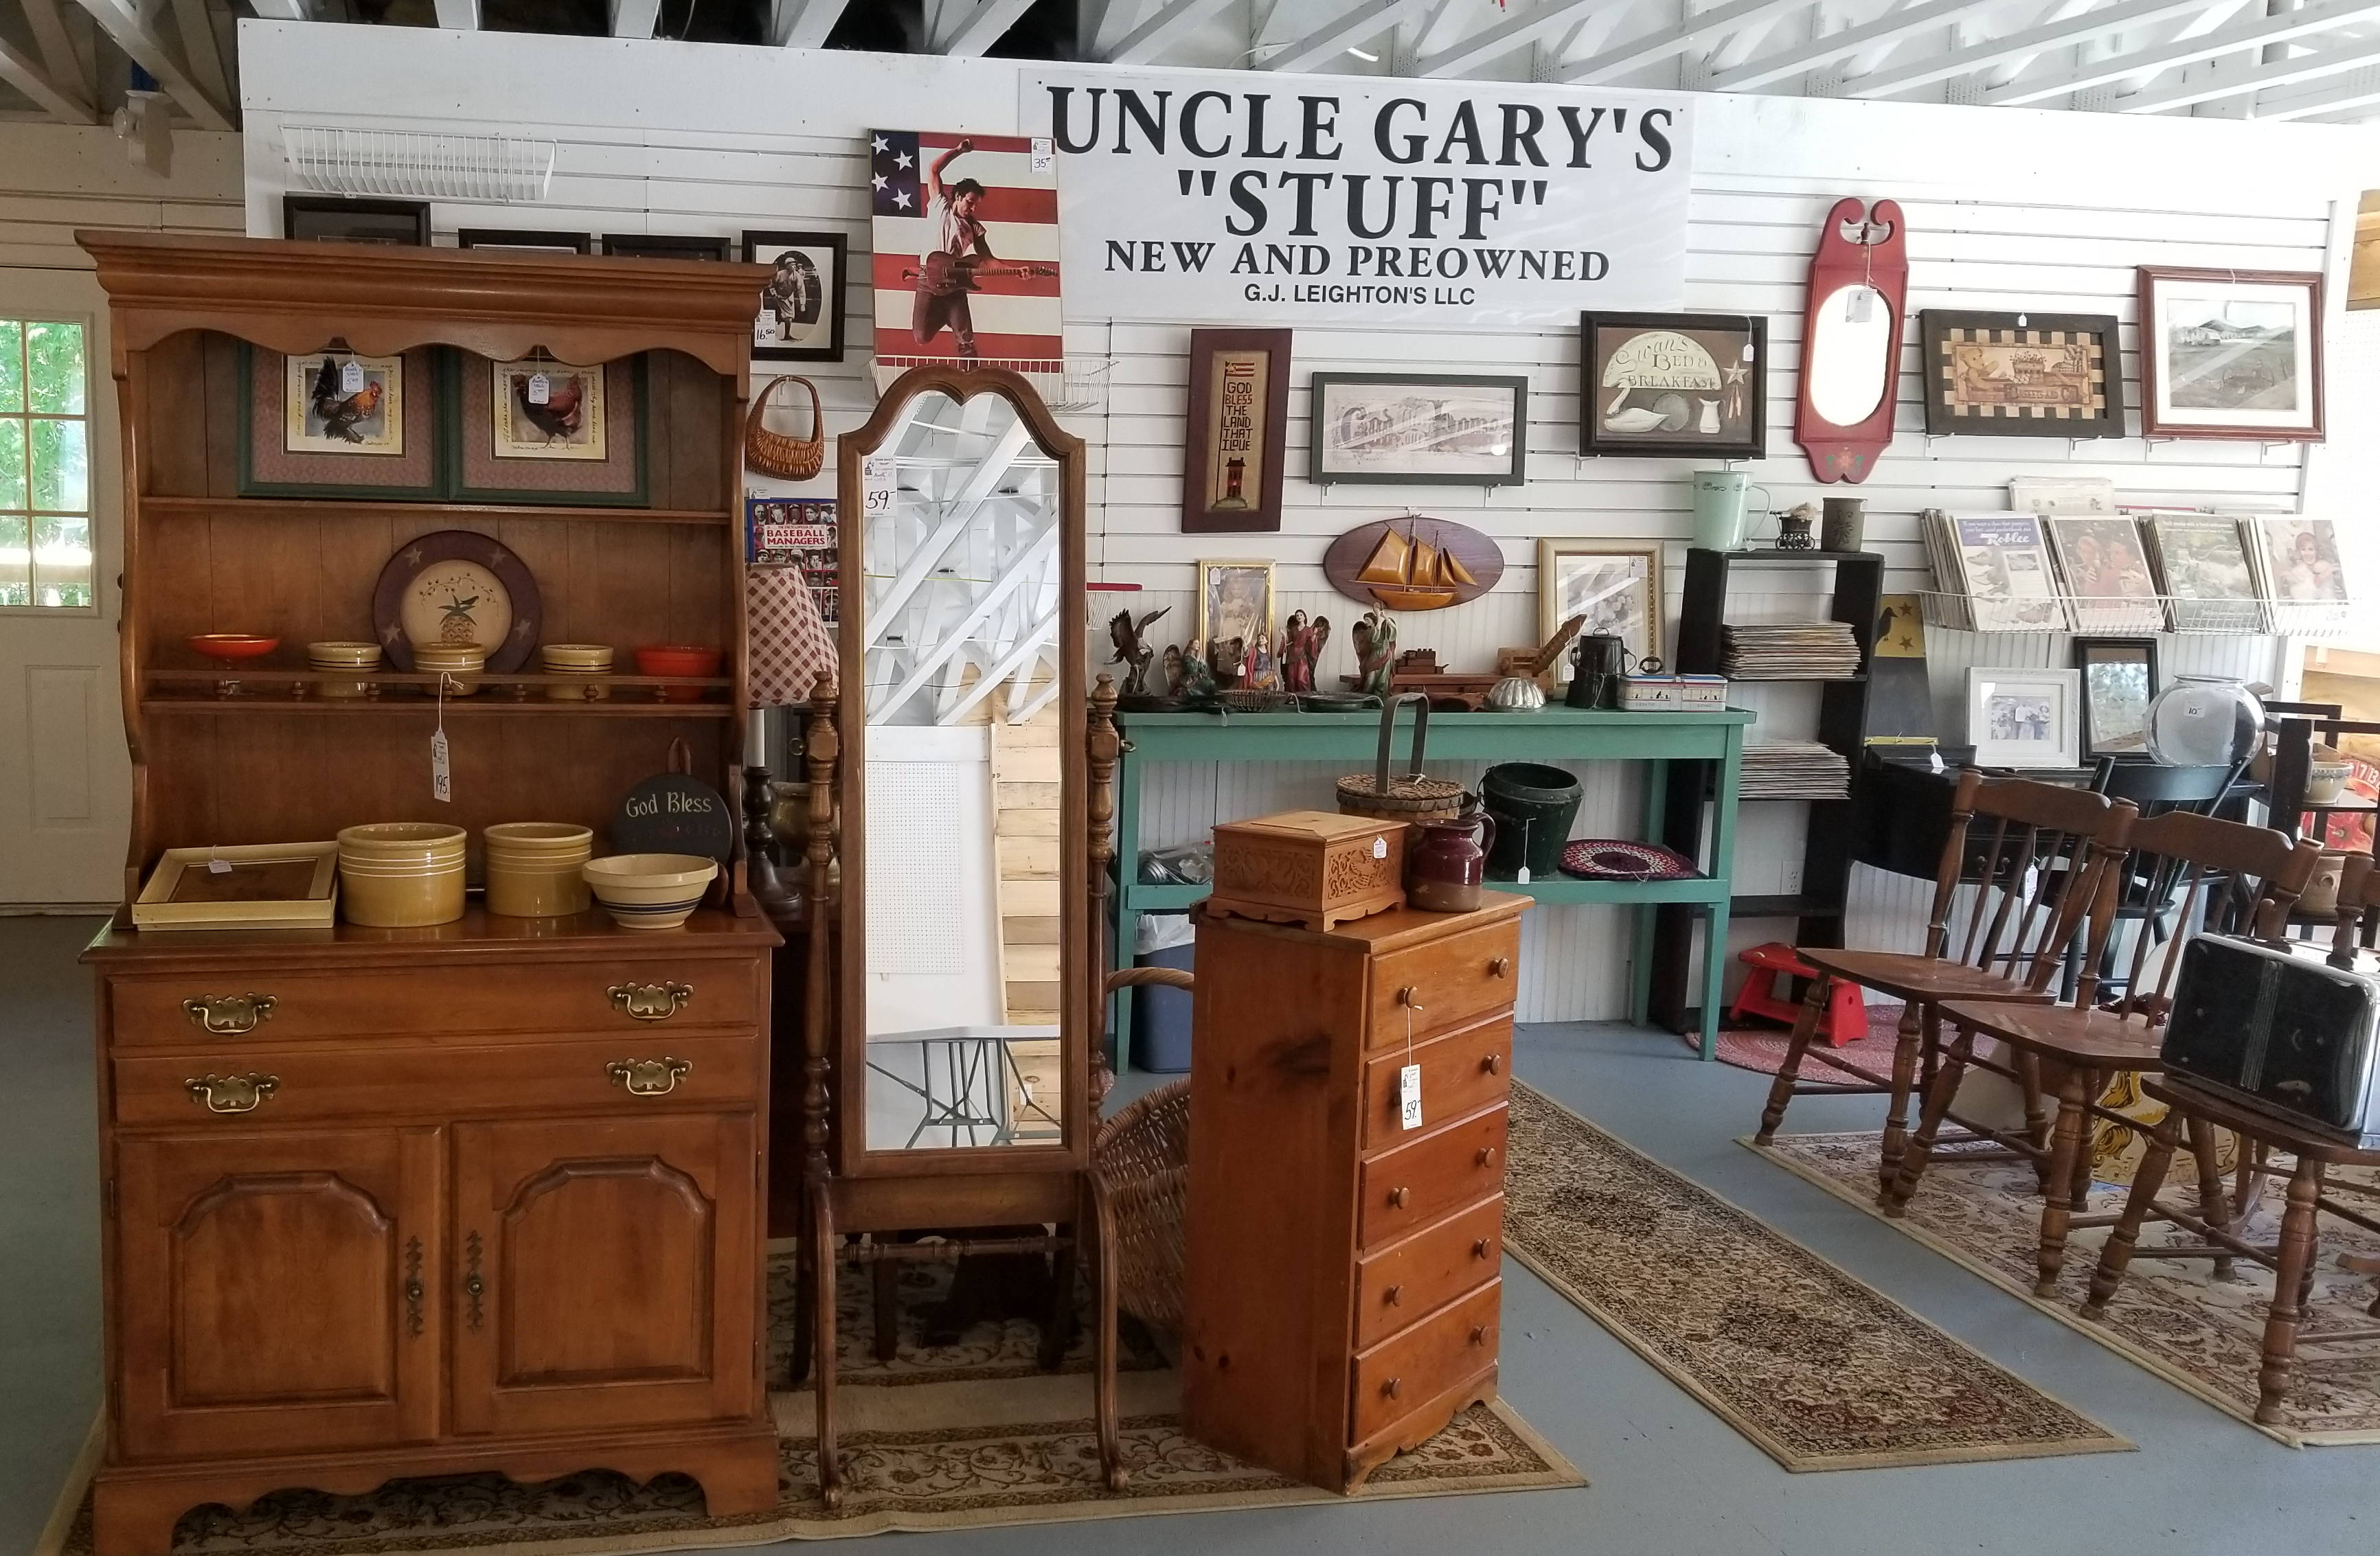 picture of uncle gary's stuff 1